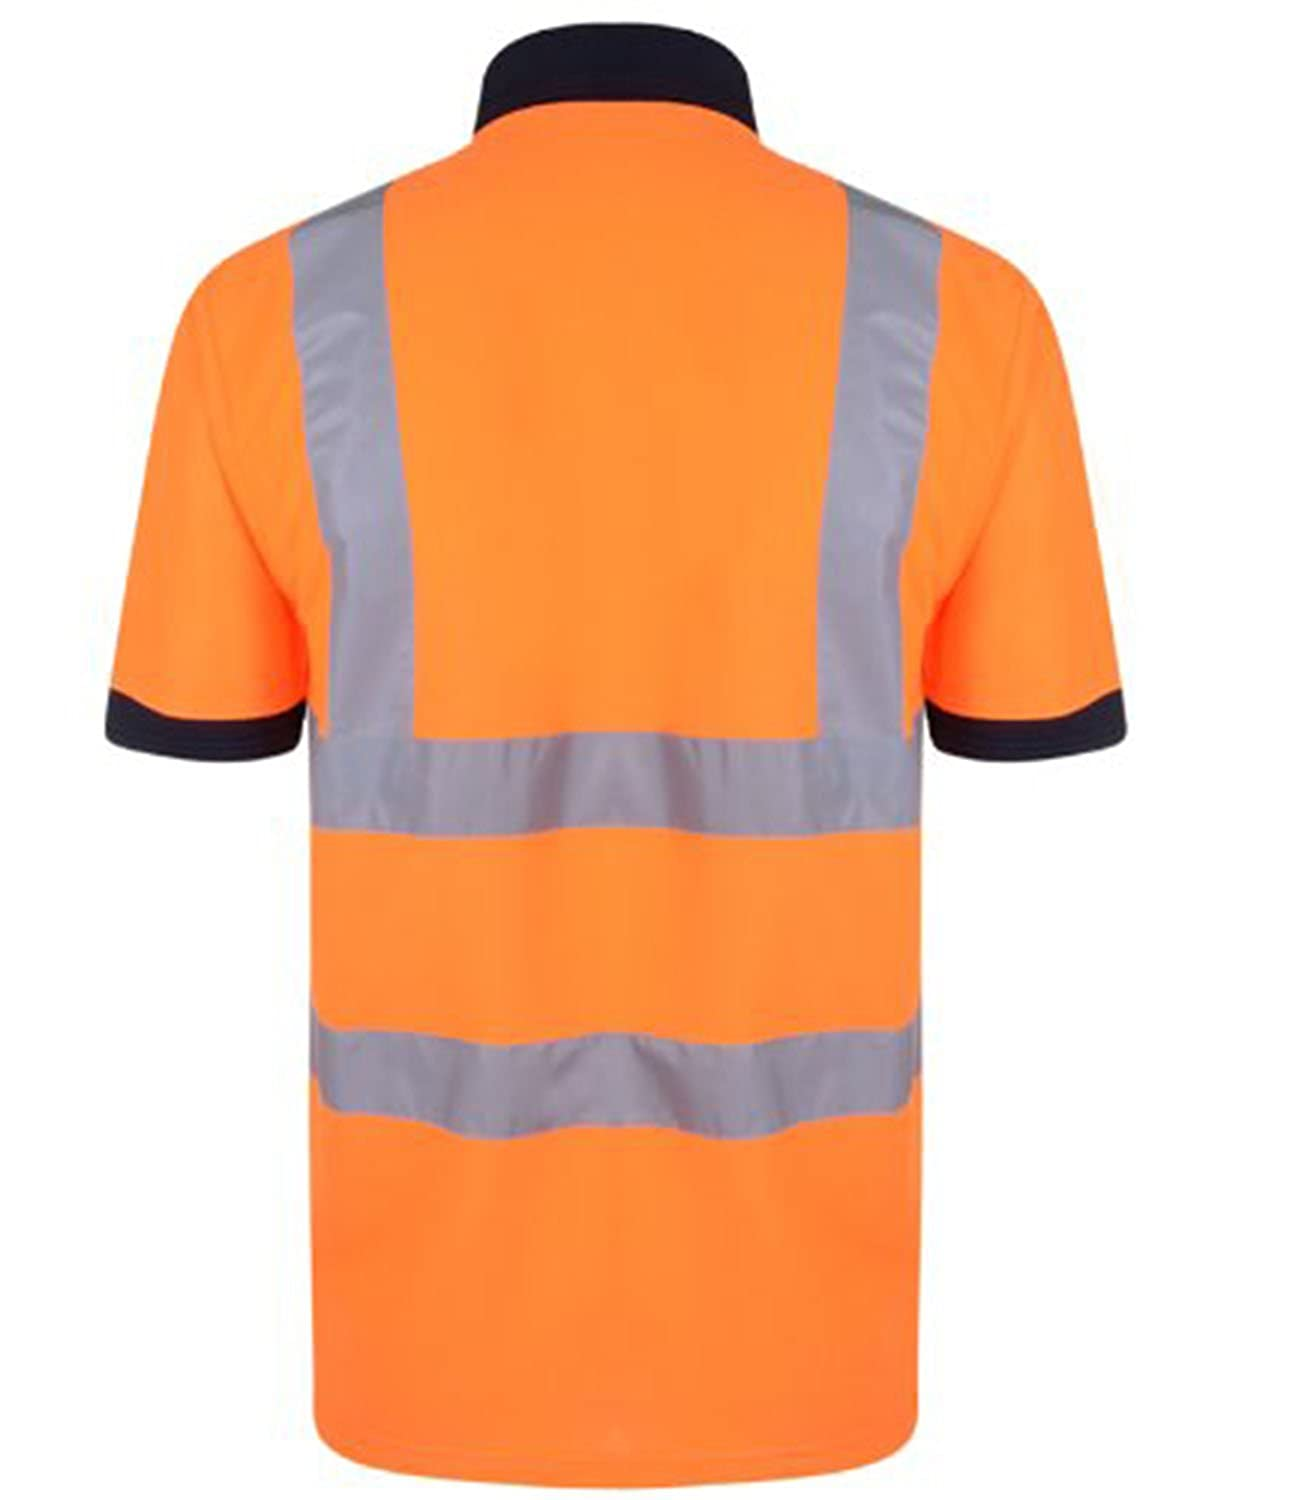 7378601e3 Amazon.com: Forever Hi Viz Navy Collar Safety Work Wear High Visibility 2  Tone Polo T-Shirt: Clothing